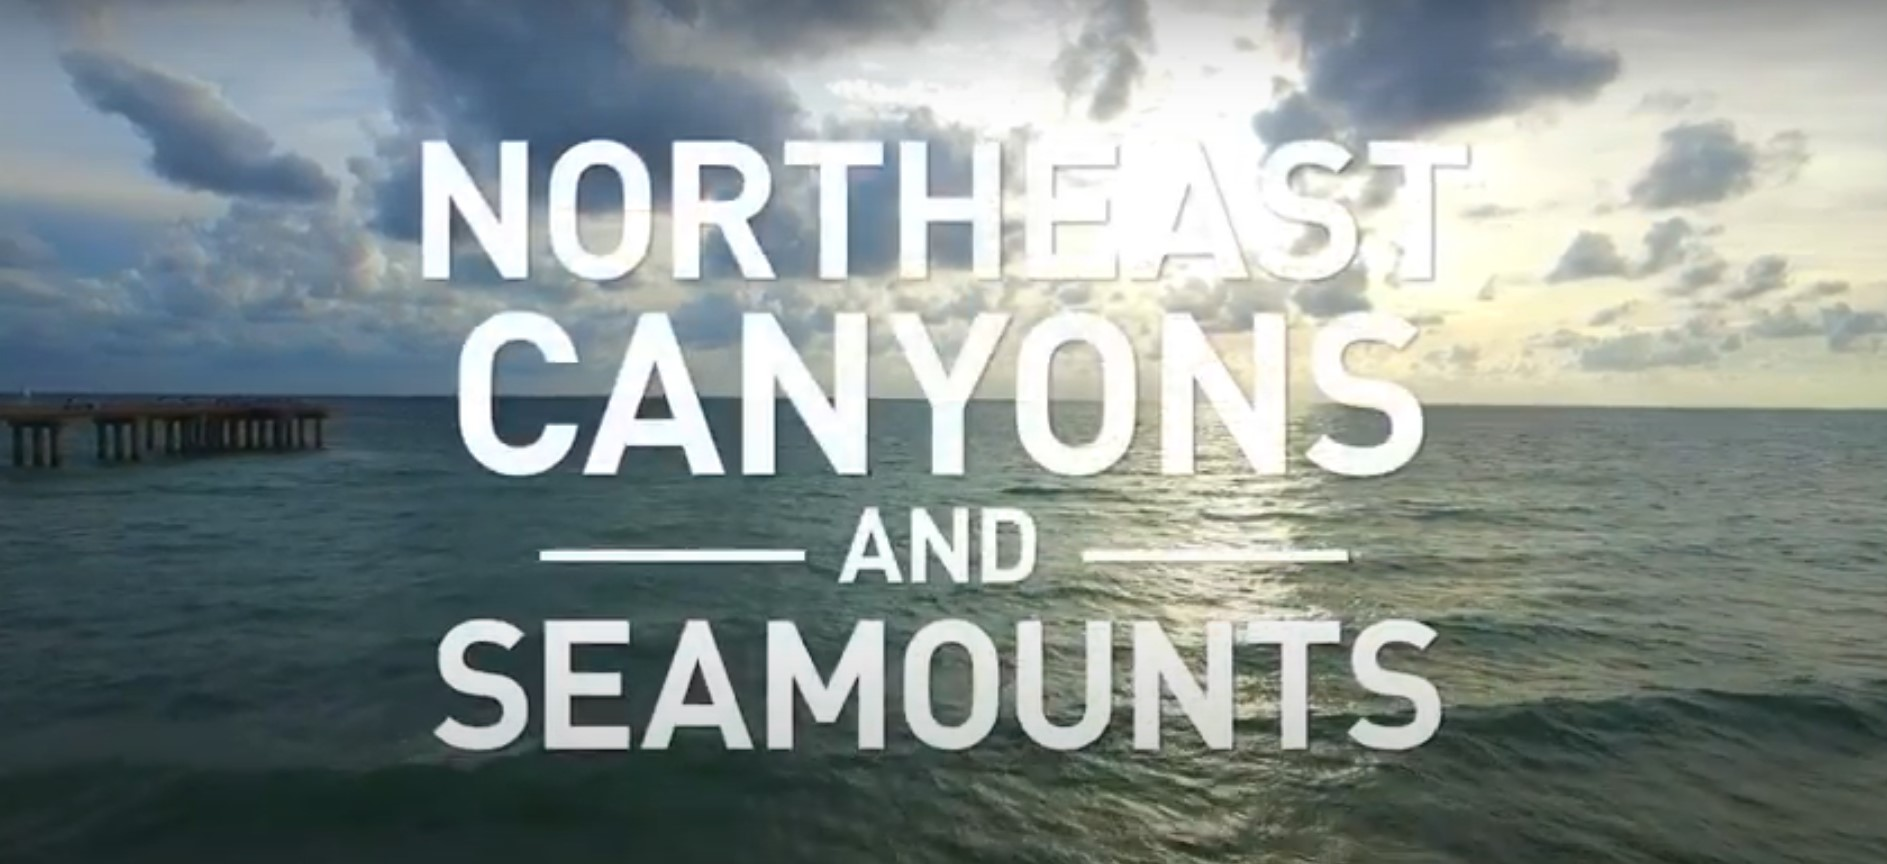 Northeast Seamounts and Canyons National Monument